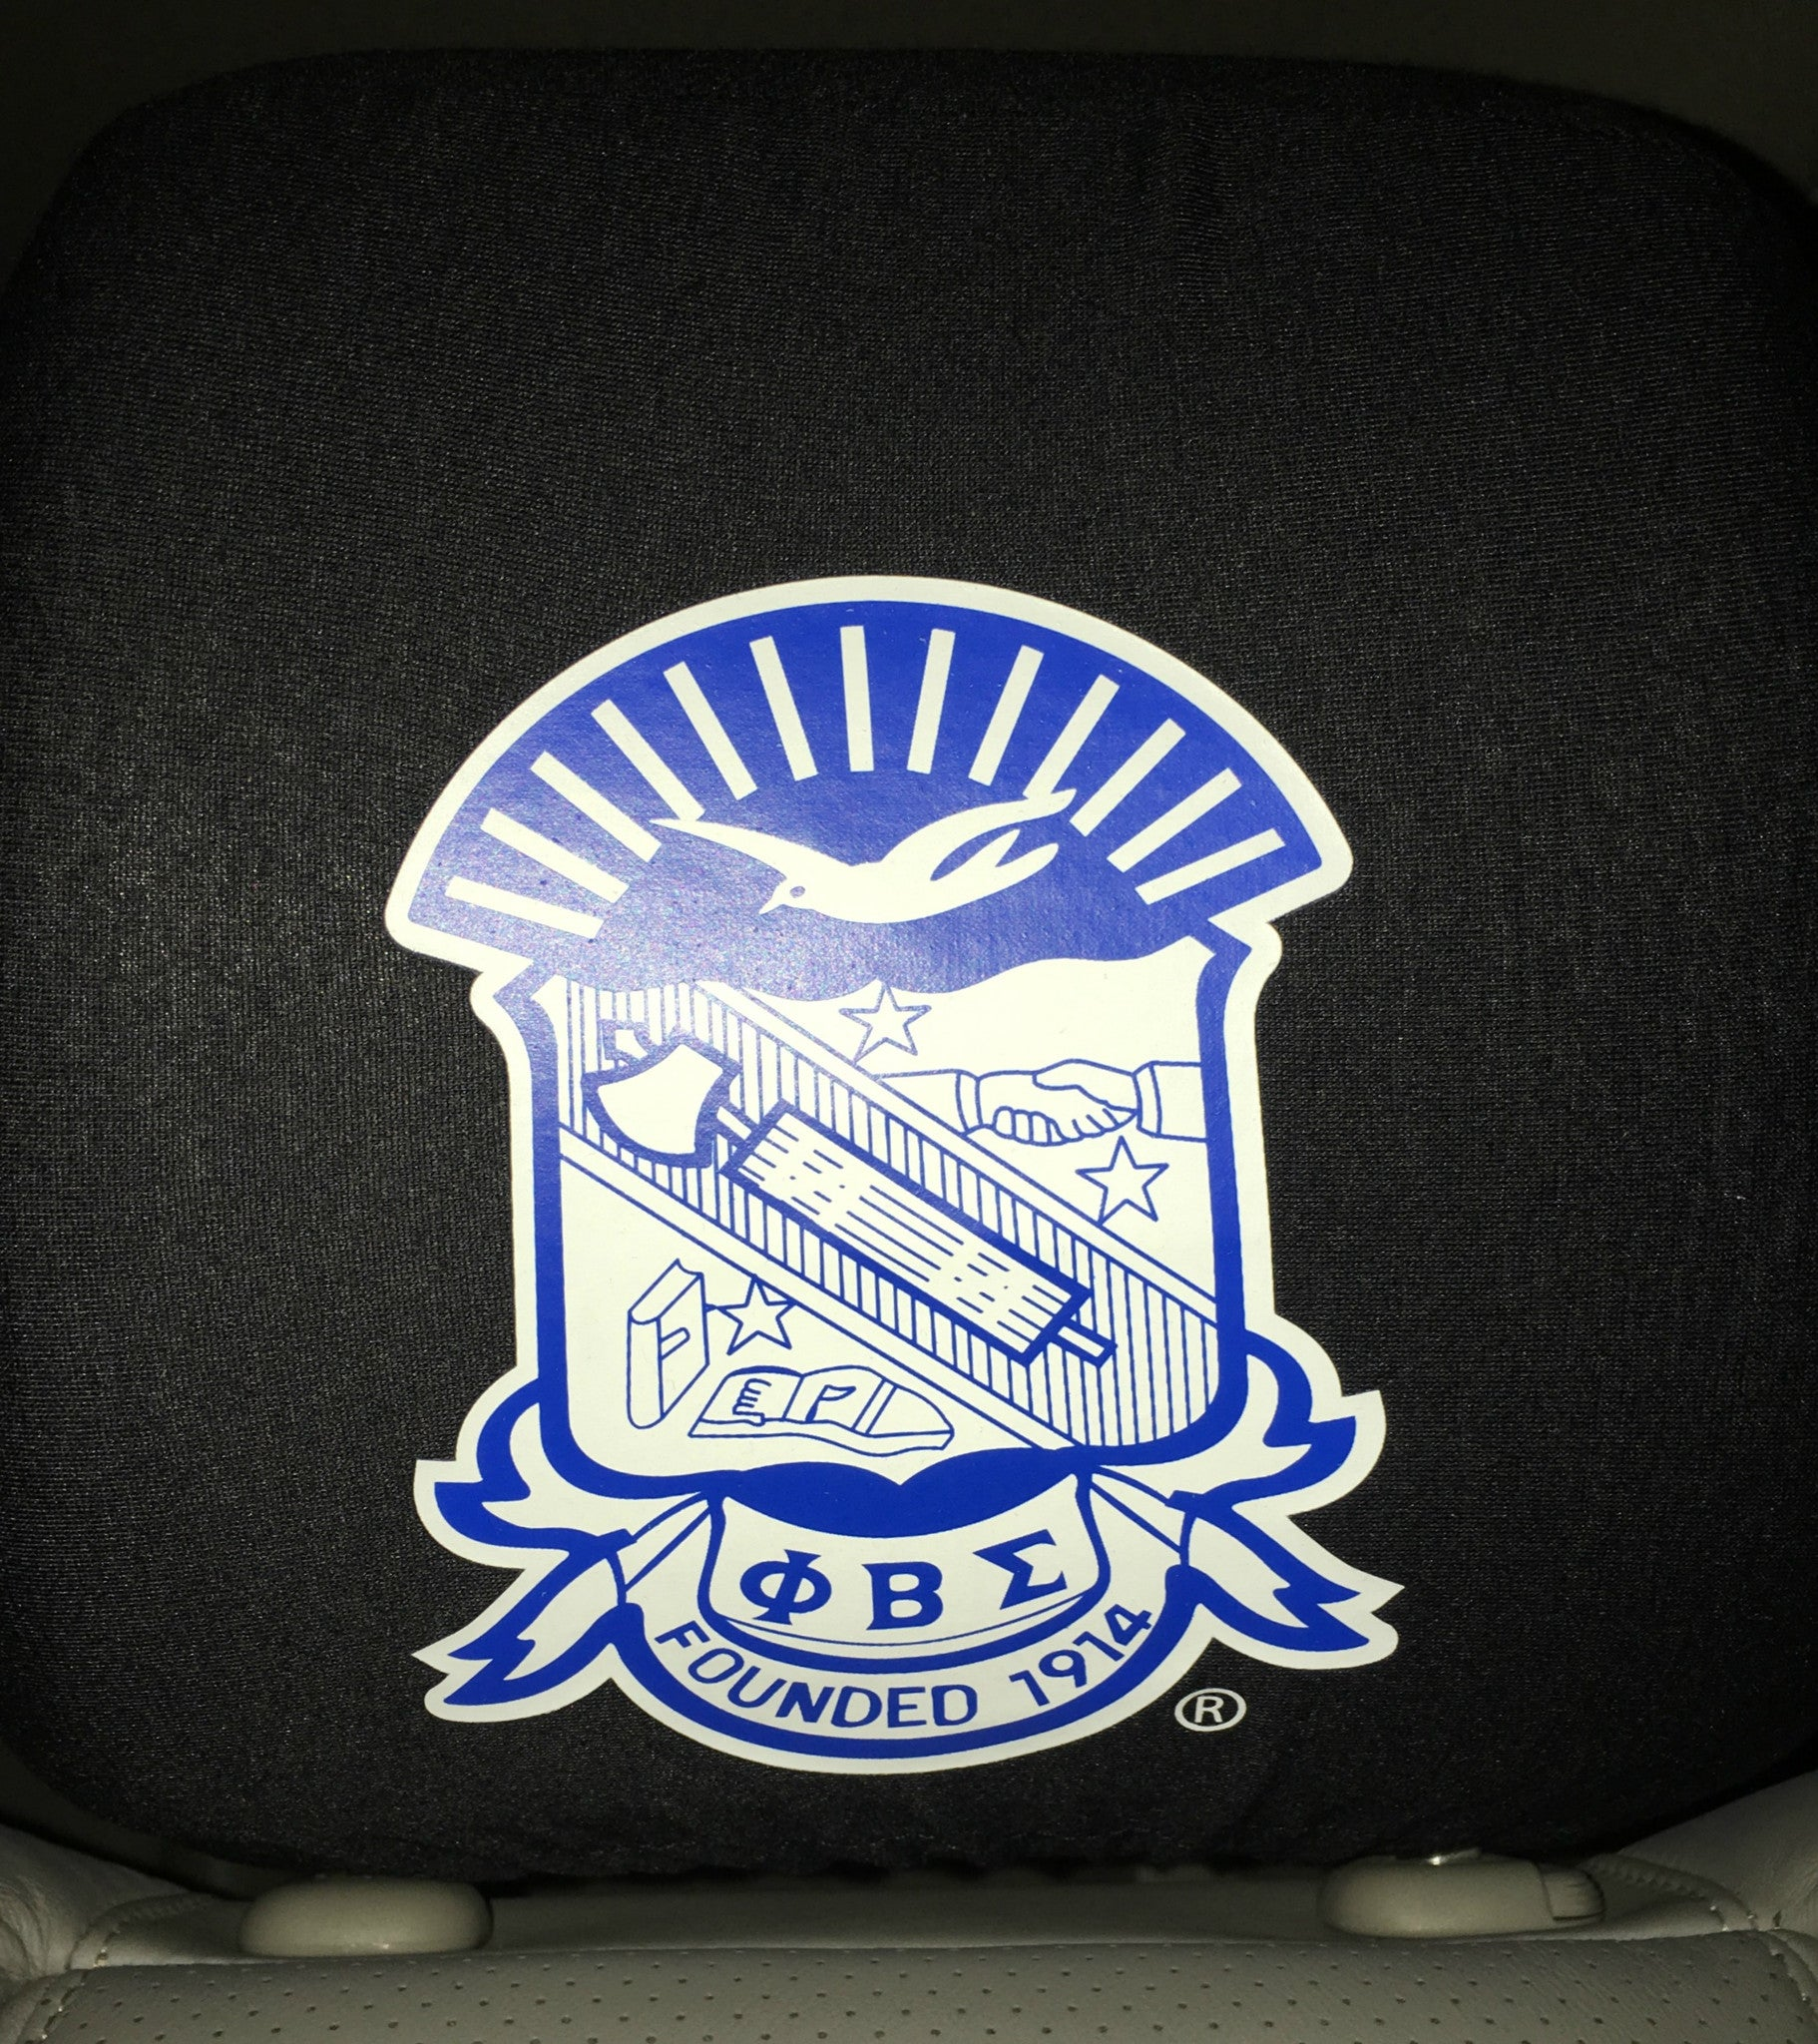 Phi beta sigma j mar greek life phi beta sigma car seat headrest cover biocorpaavc Images